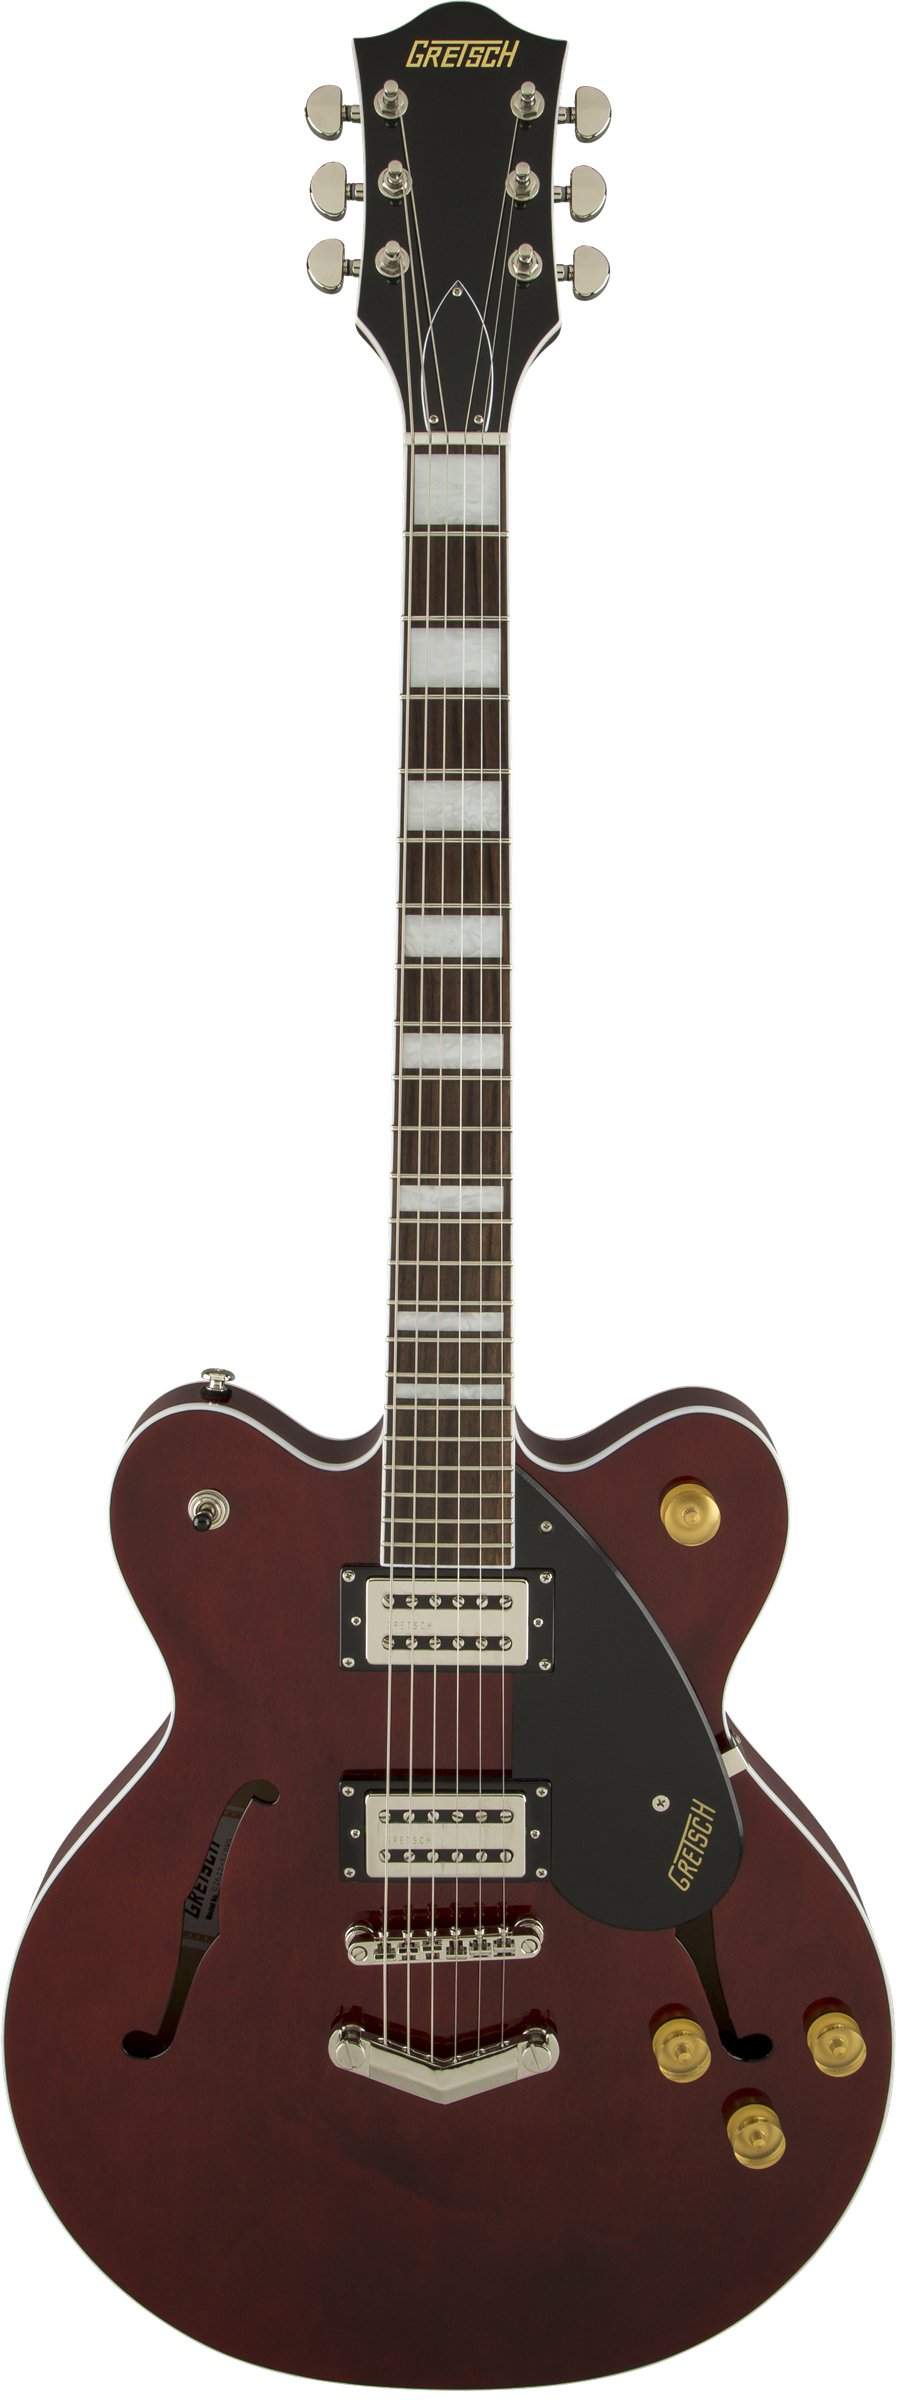 Gretsch G2622 Streamliner Center Block Double Cutaway - Walnut Stain by Gretsch